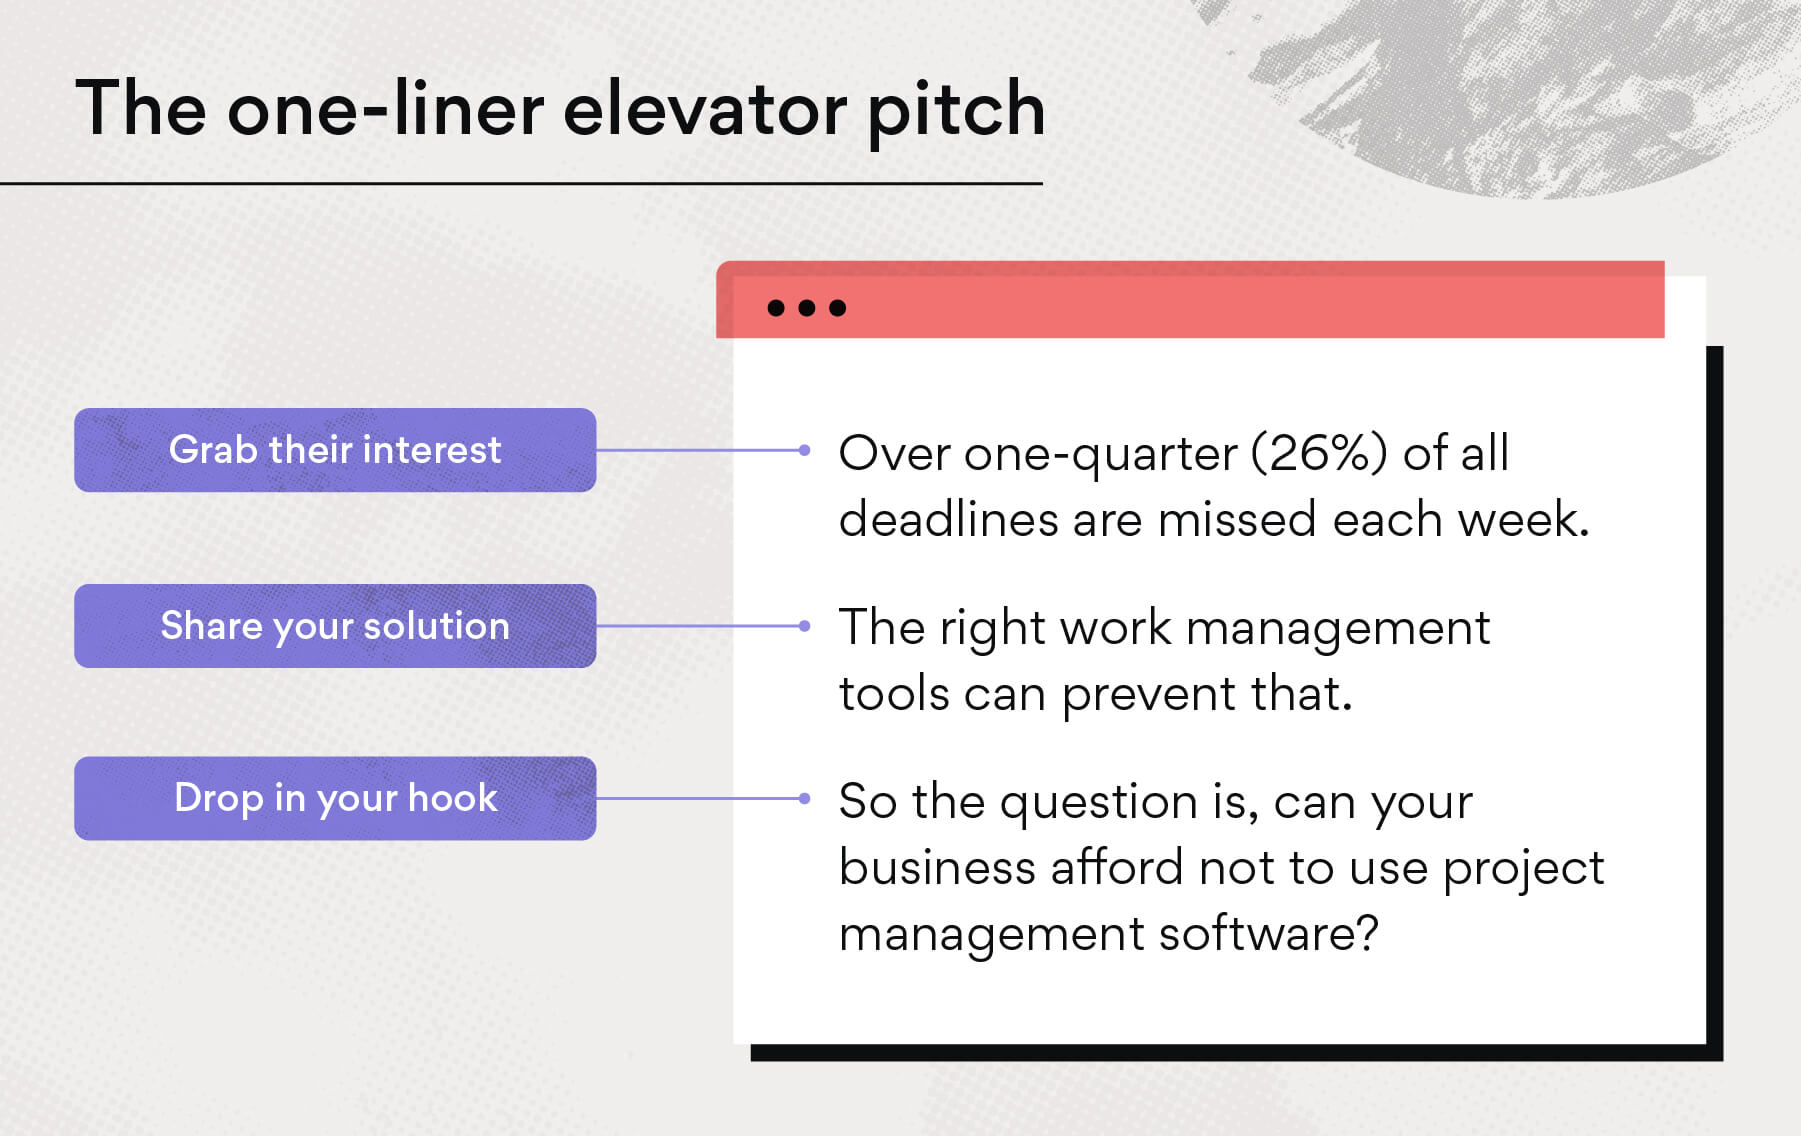 The one-liner elevator pitch